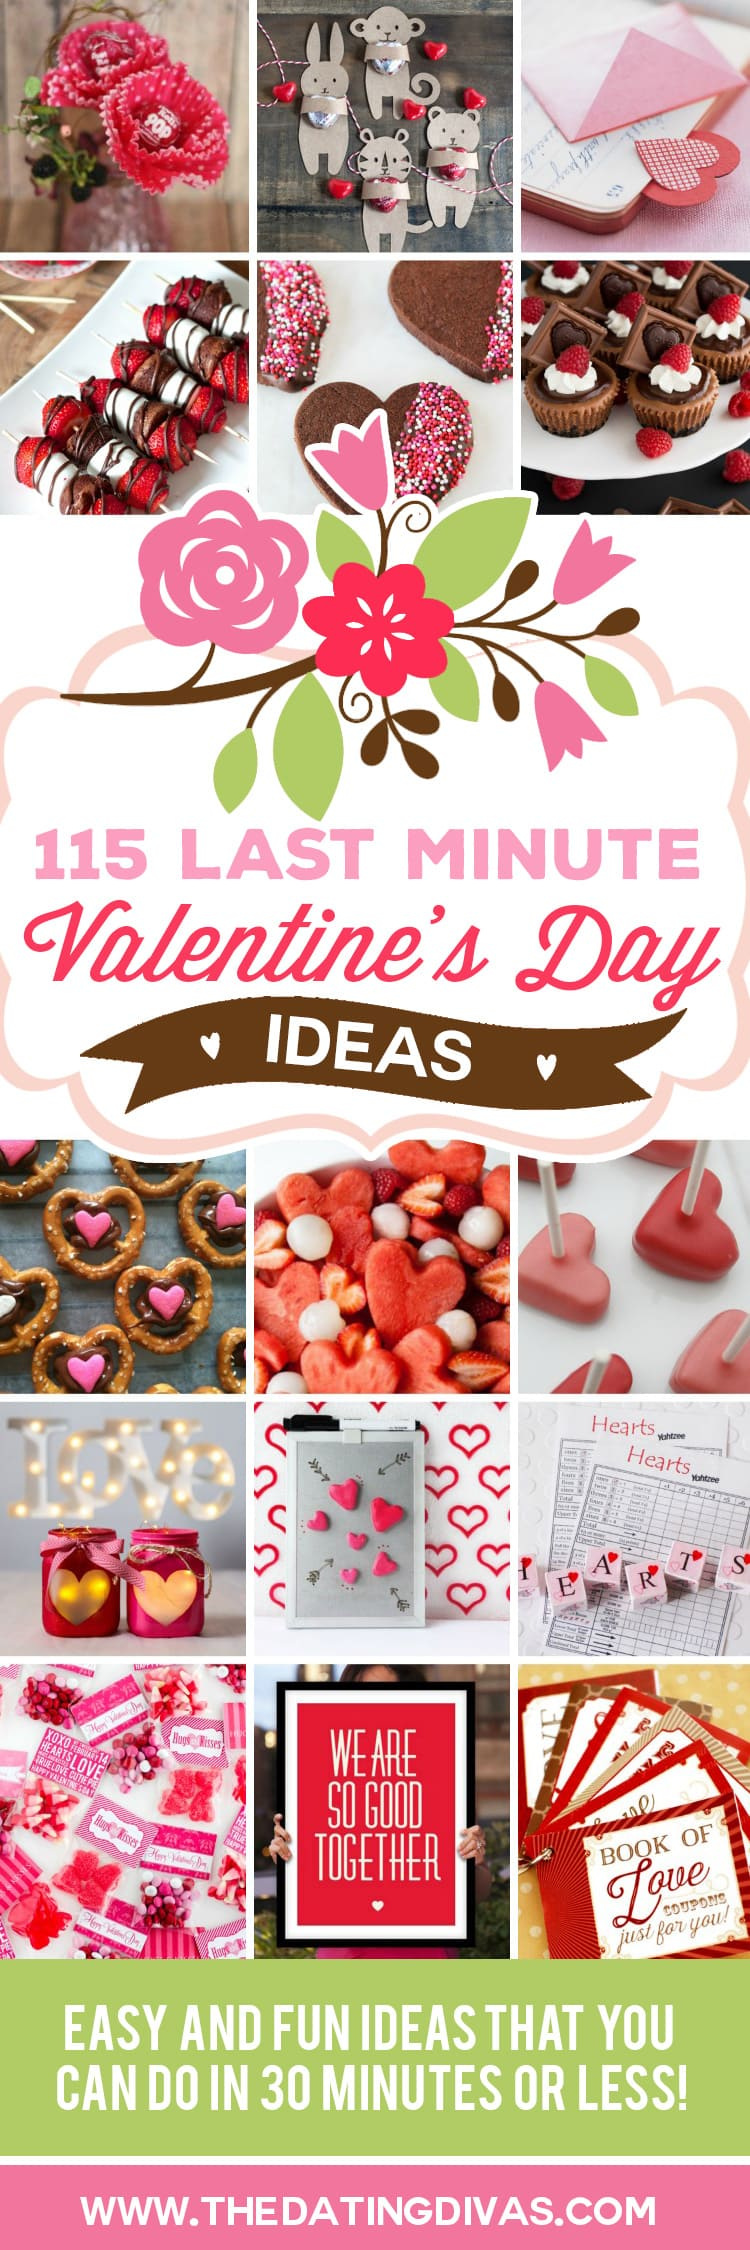 Last minute Valentine's Day ideas that you can do in 30 minutes or less! Who says Valentine's Day has to be stressful? We've got your back!